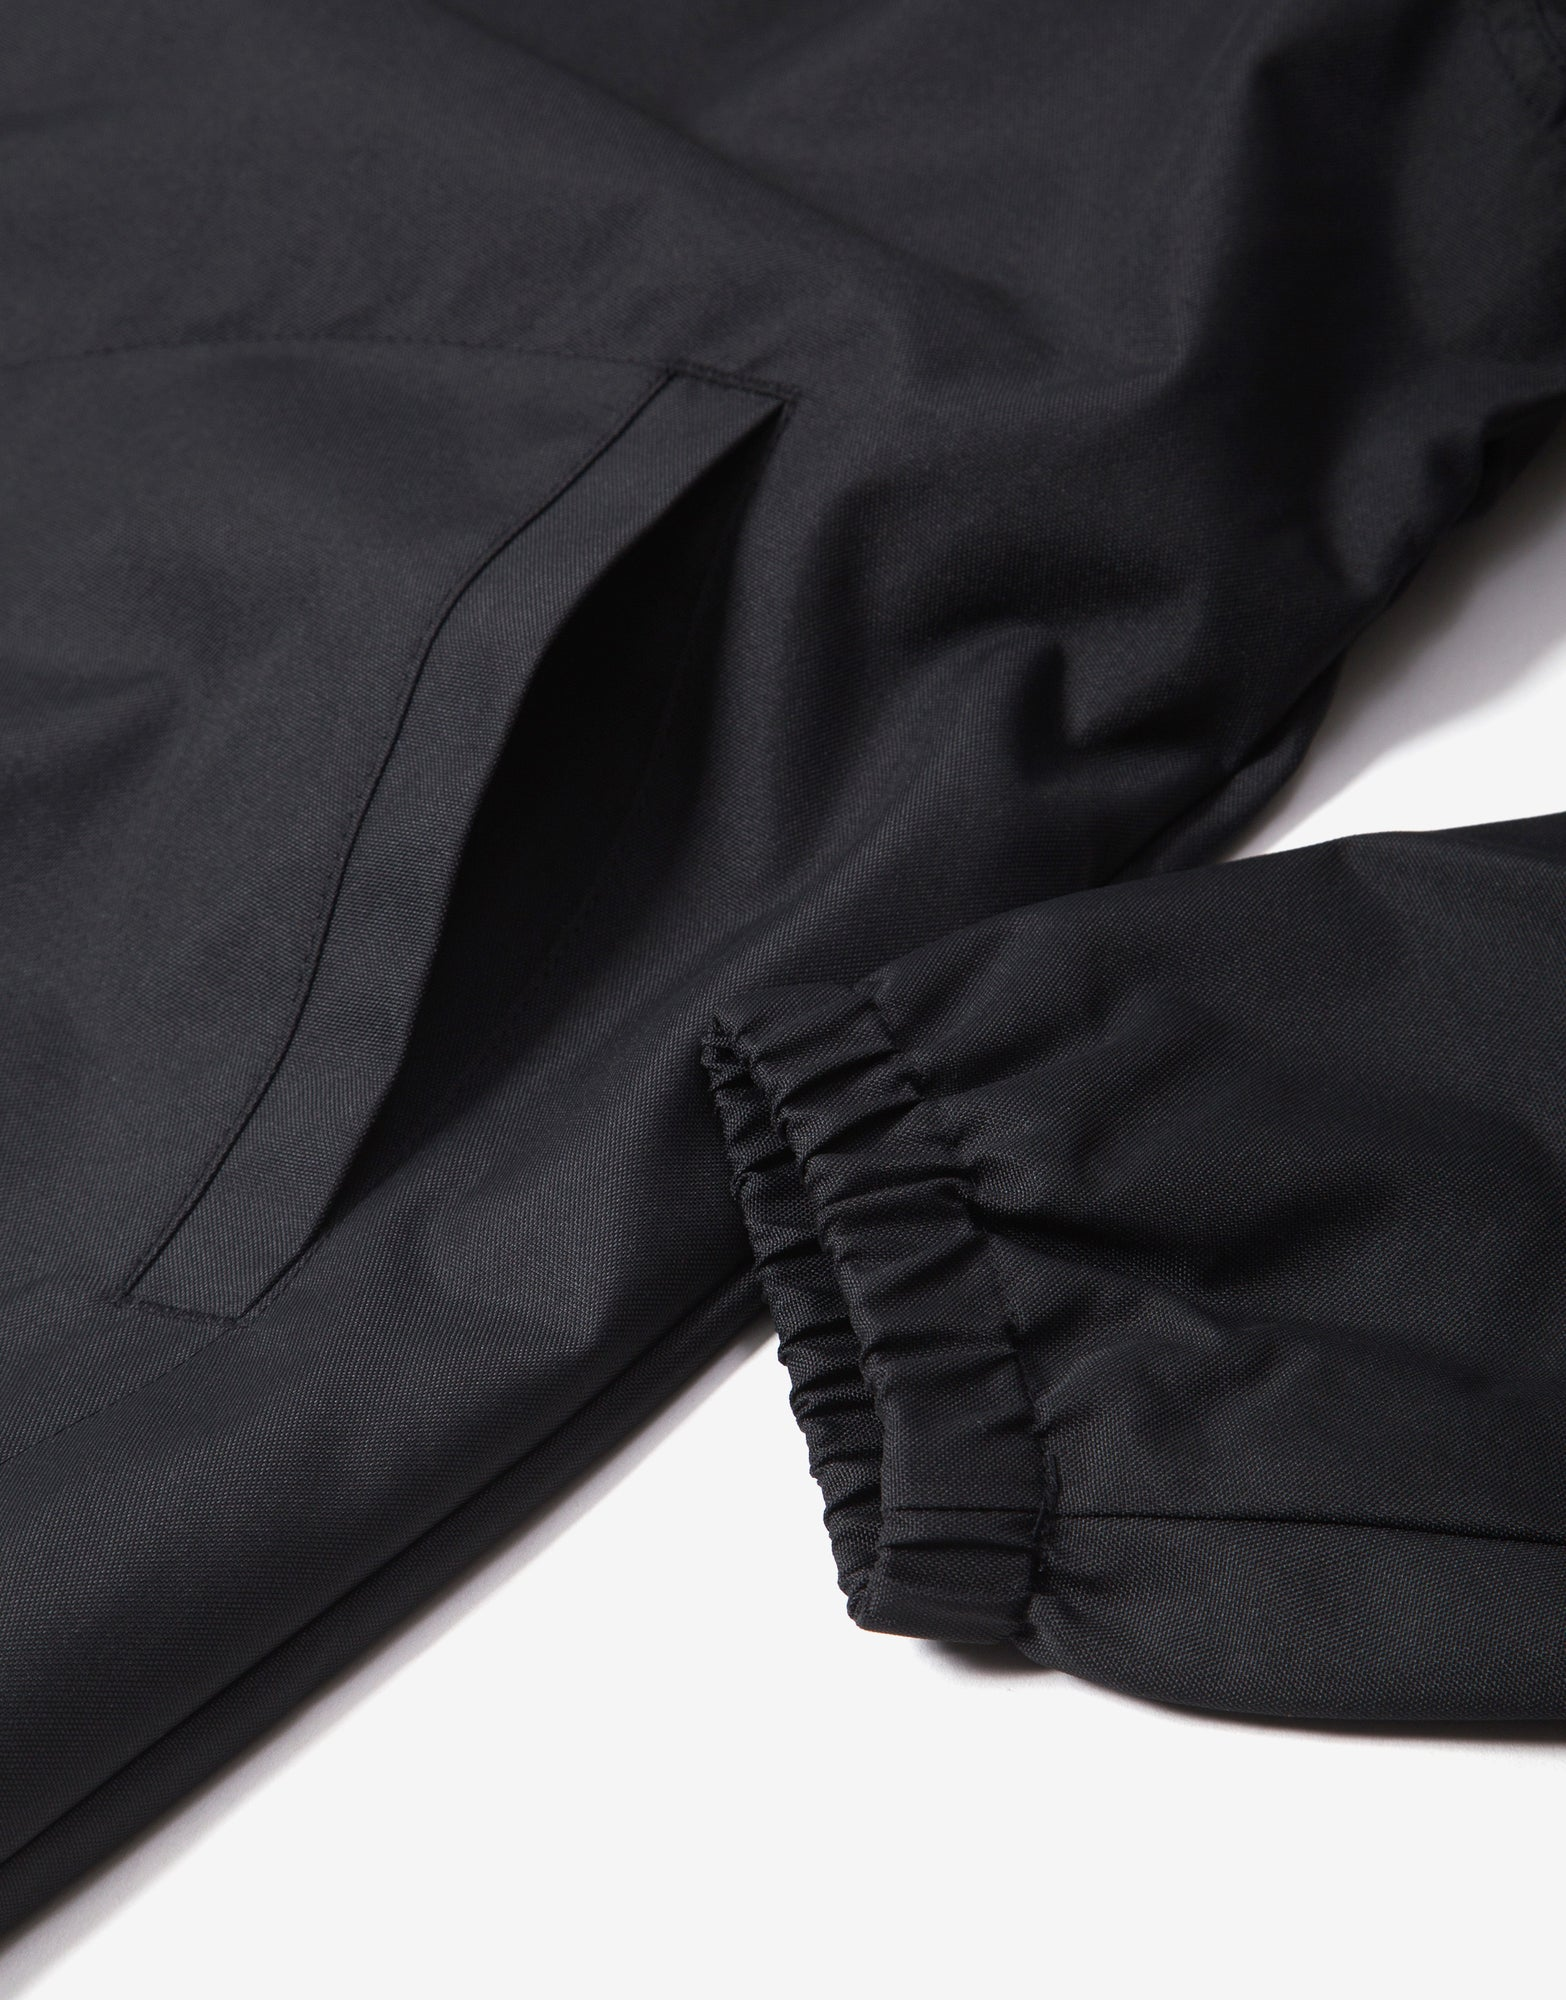 Brixton Claxton Alton Zip Jacket - Black/White